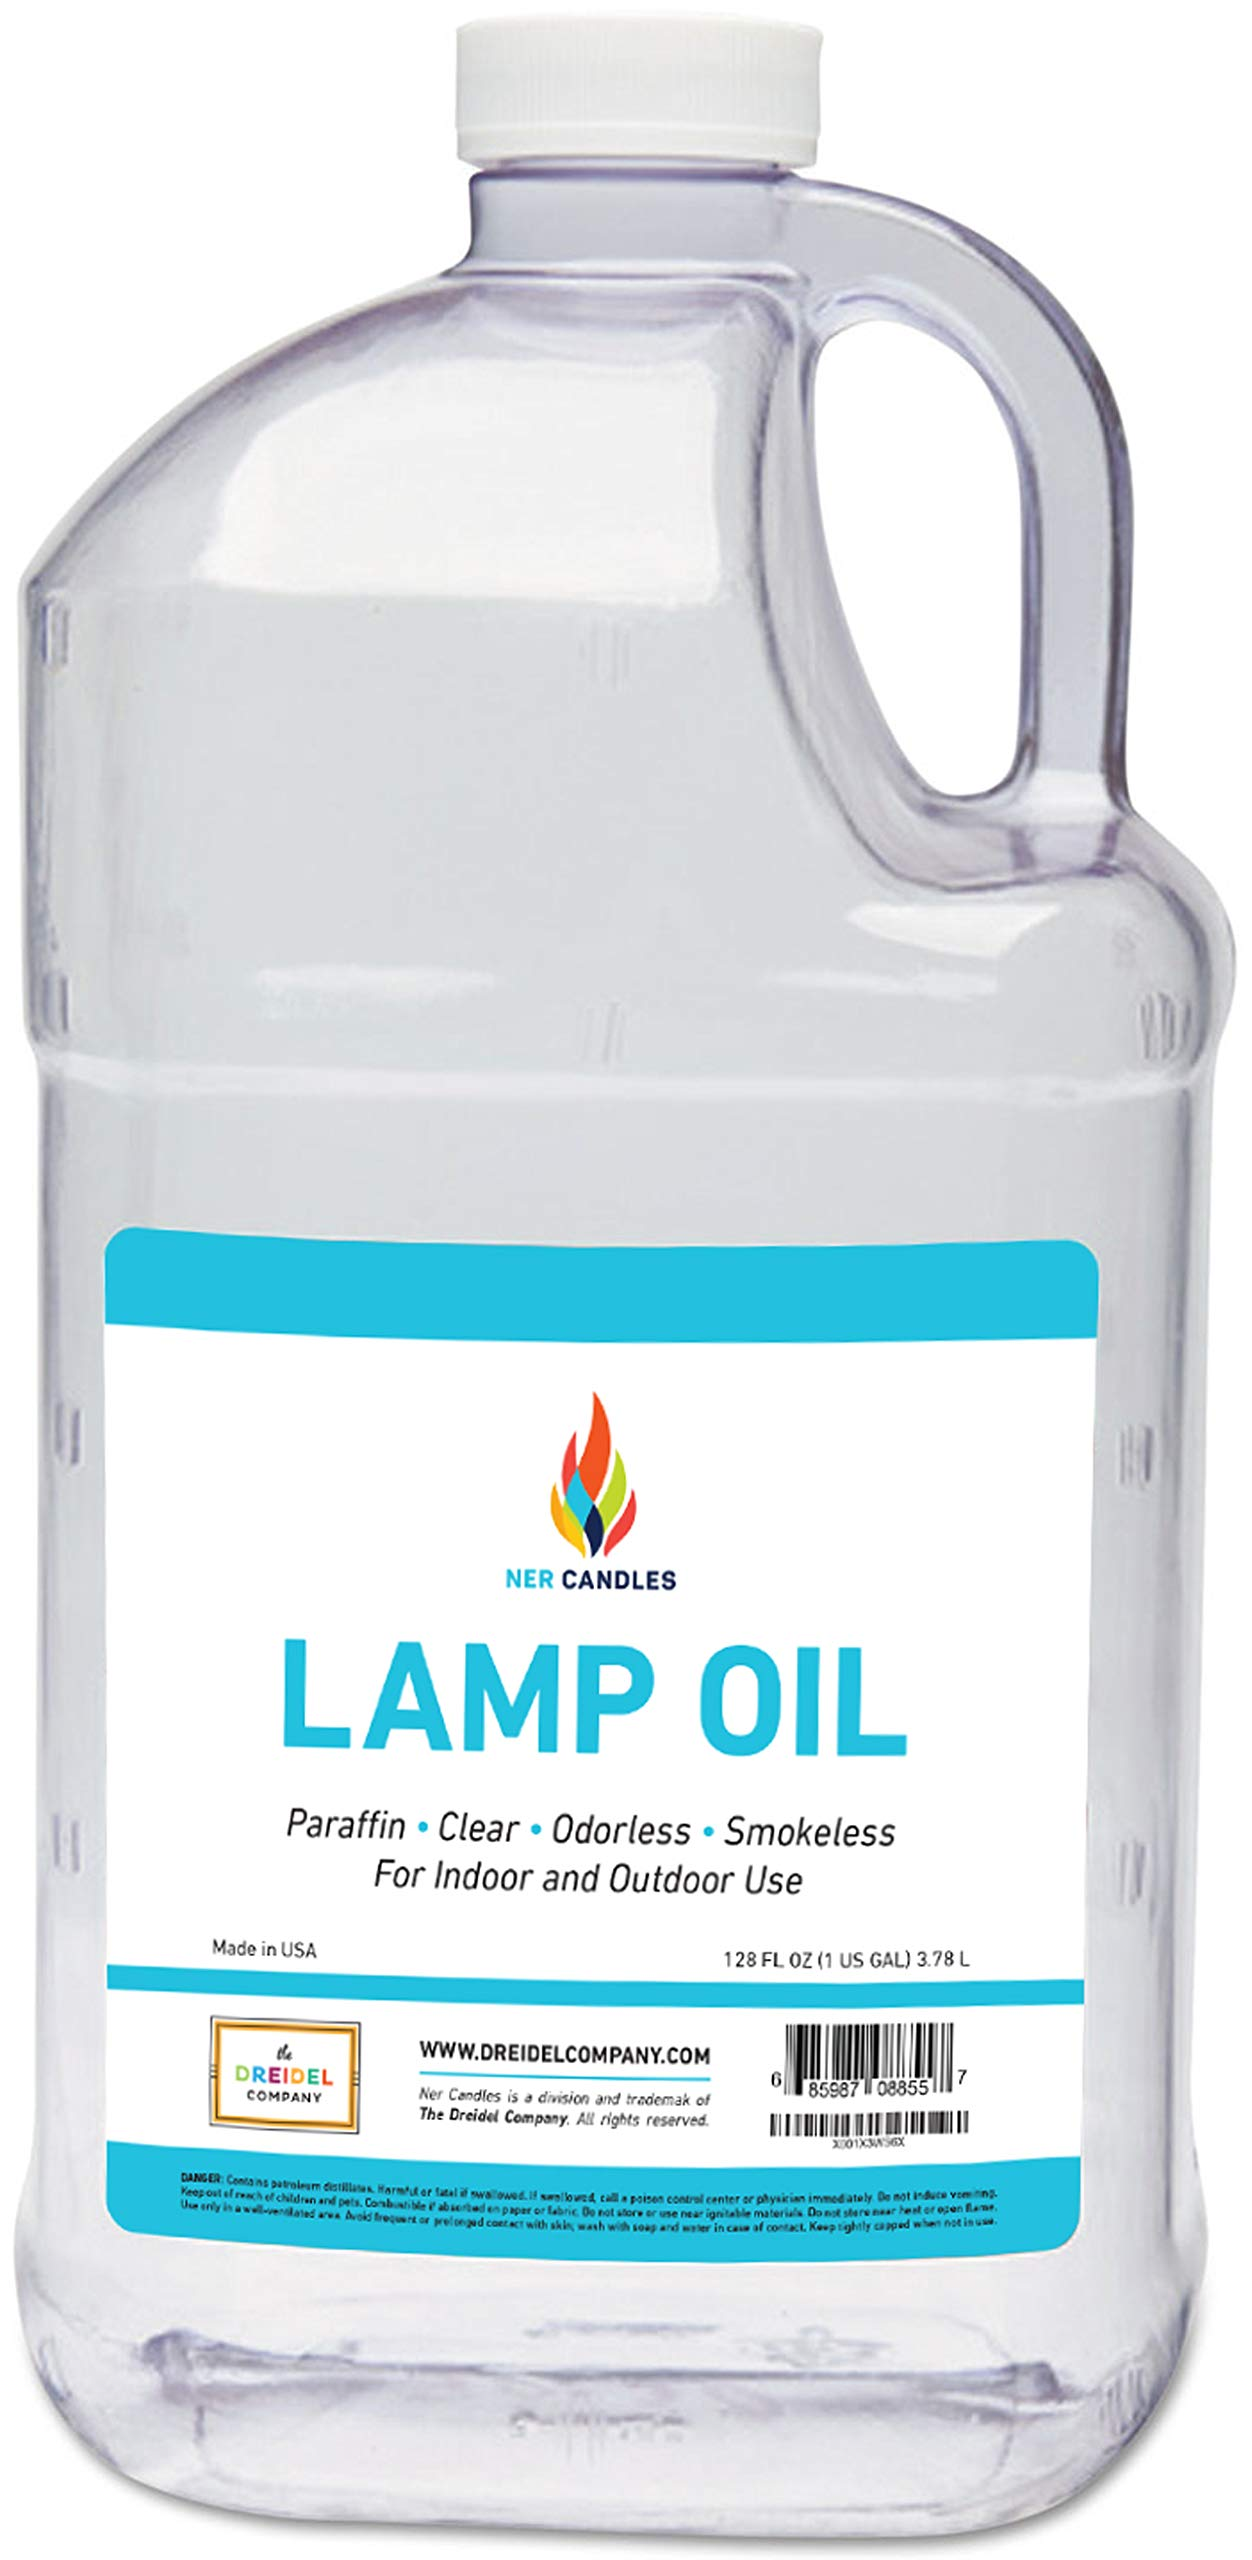 Liquid Paraffin Lamp Oil - 1 Gallon - Smokeless, Odorless, Ultra Clean Burning Fuel for Indoor and Outdoor Use by The Dreidel Company